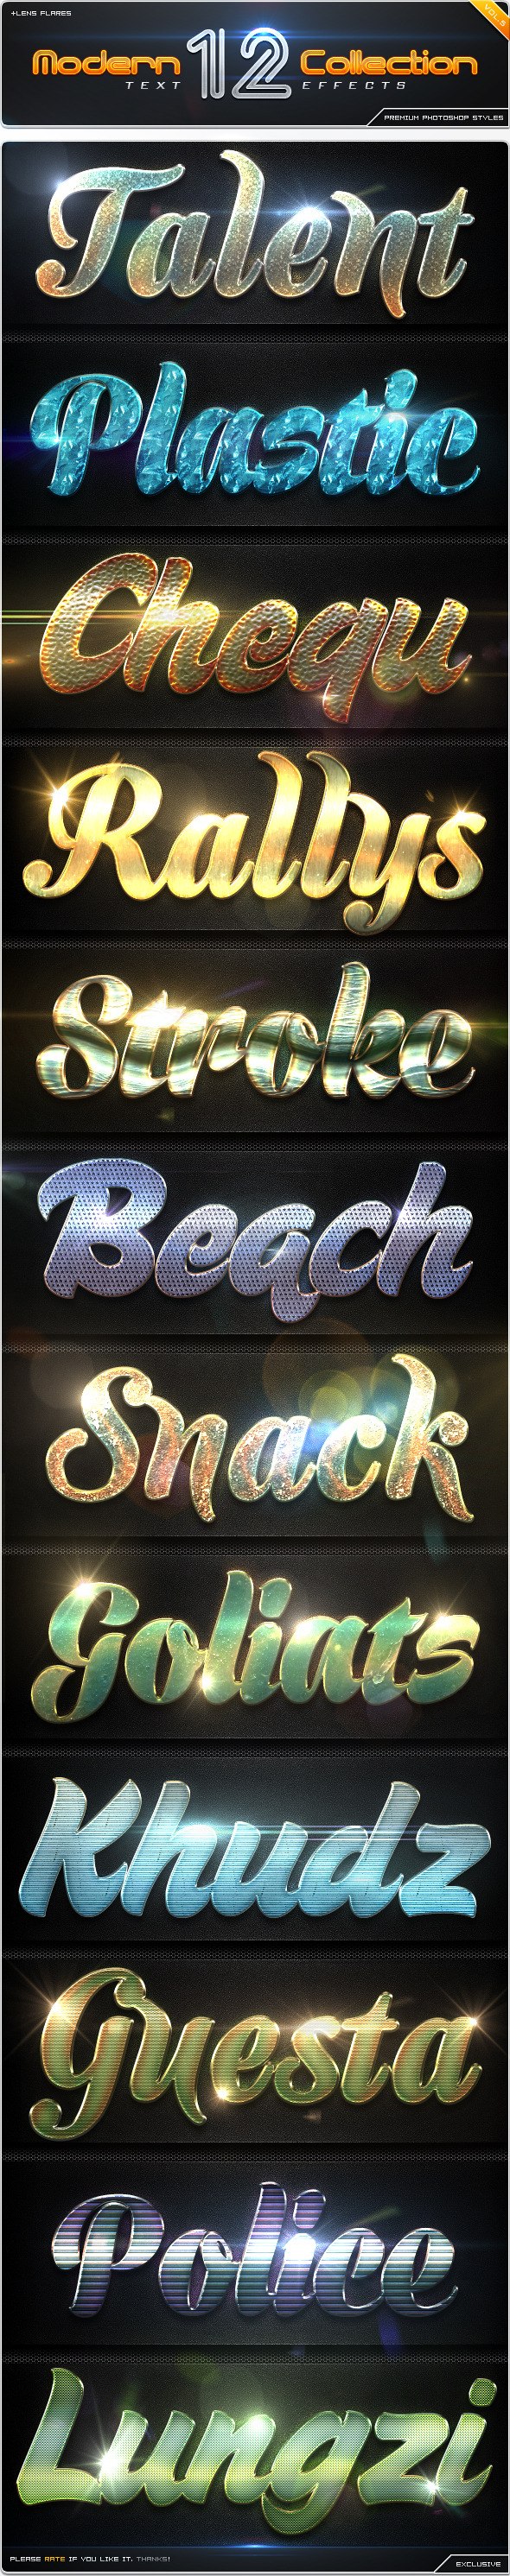 GraphicRiver 12 Modern Collection Text Effect Styles Vol.5 8864278